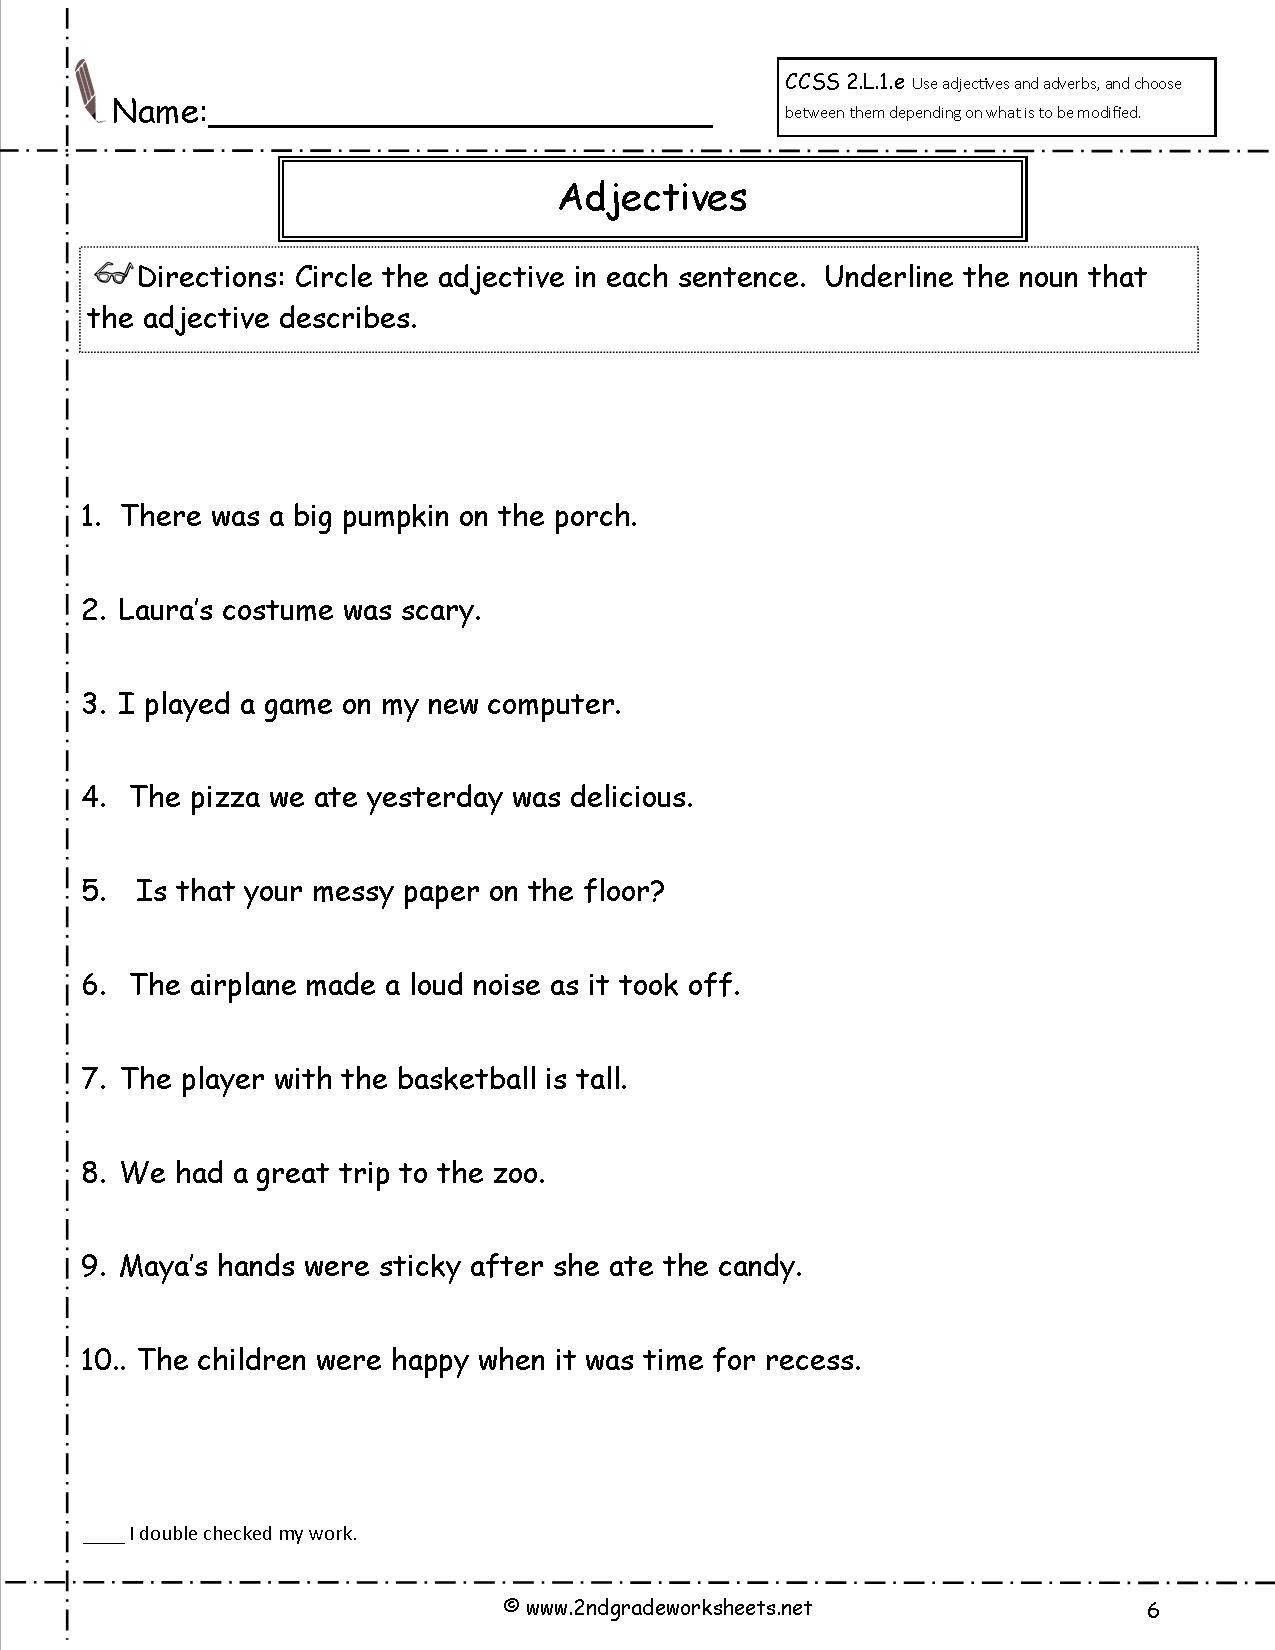 Adjectives Worksheets for Grade 1 Adjectives Worksheet for First Grade